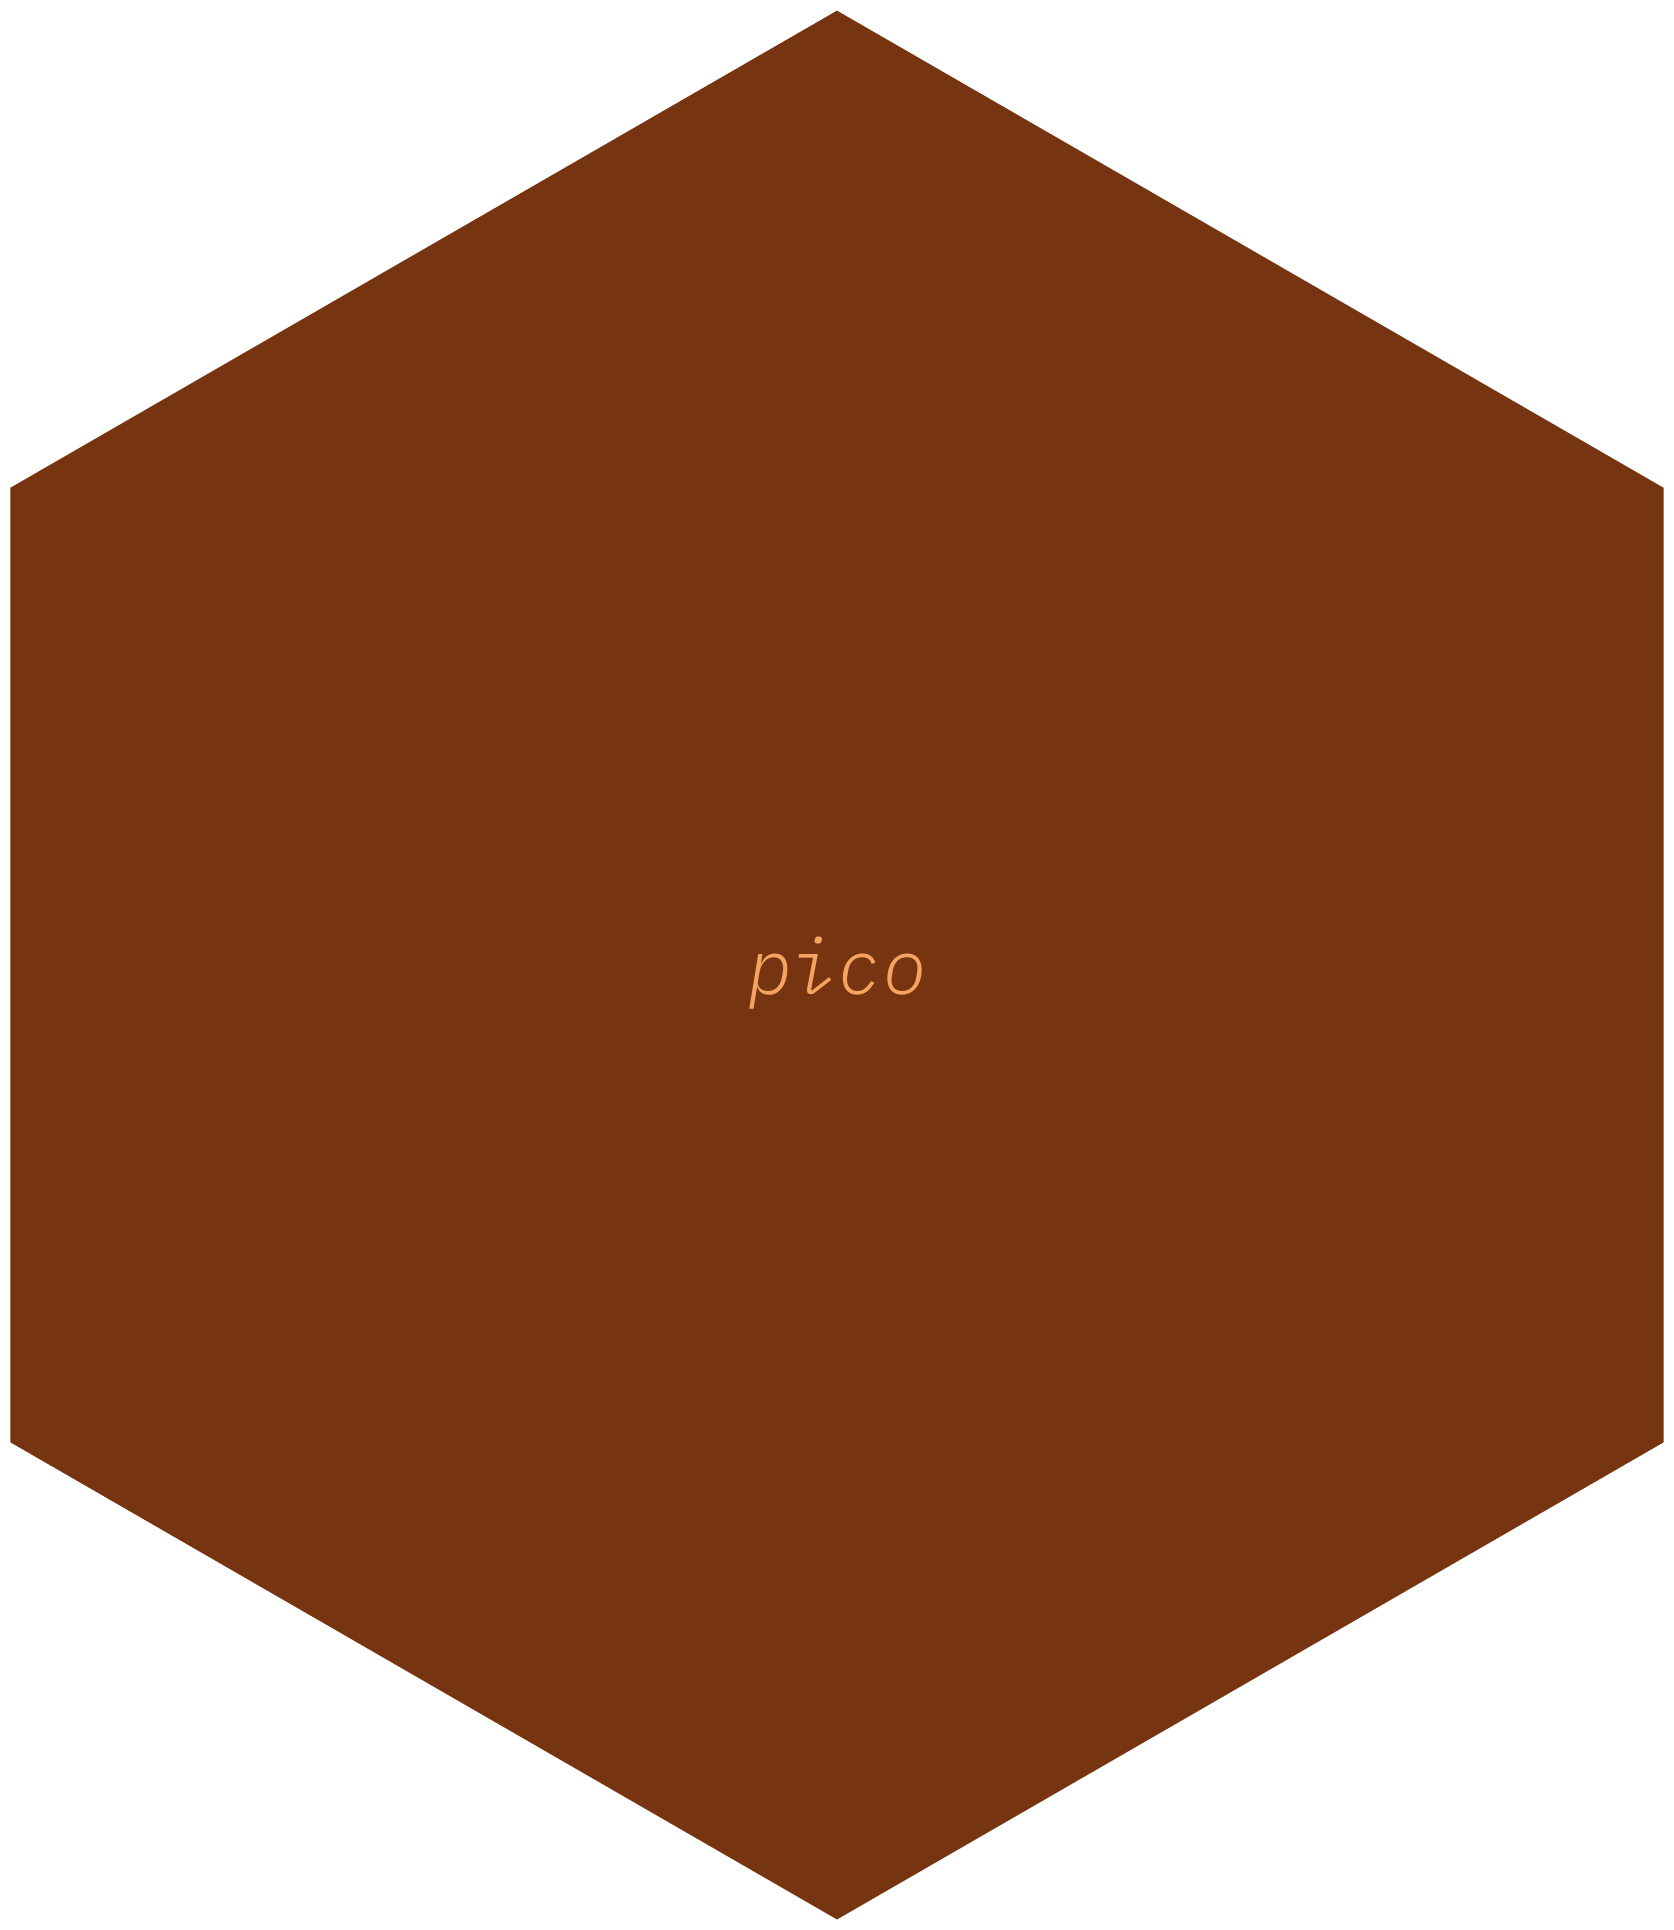 Hexagonal logo for the pico package with the package name in very small font in light brown on a darker brown background.